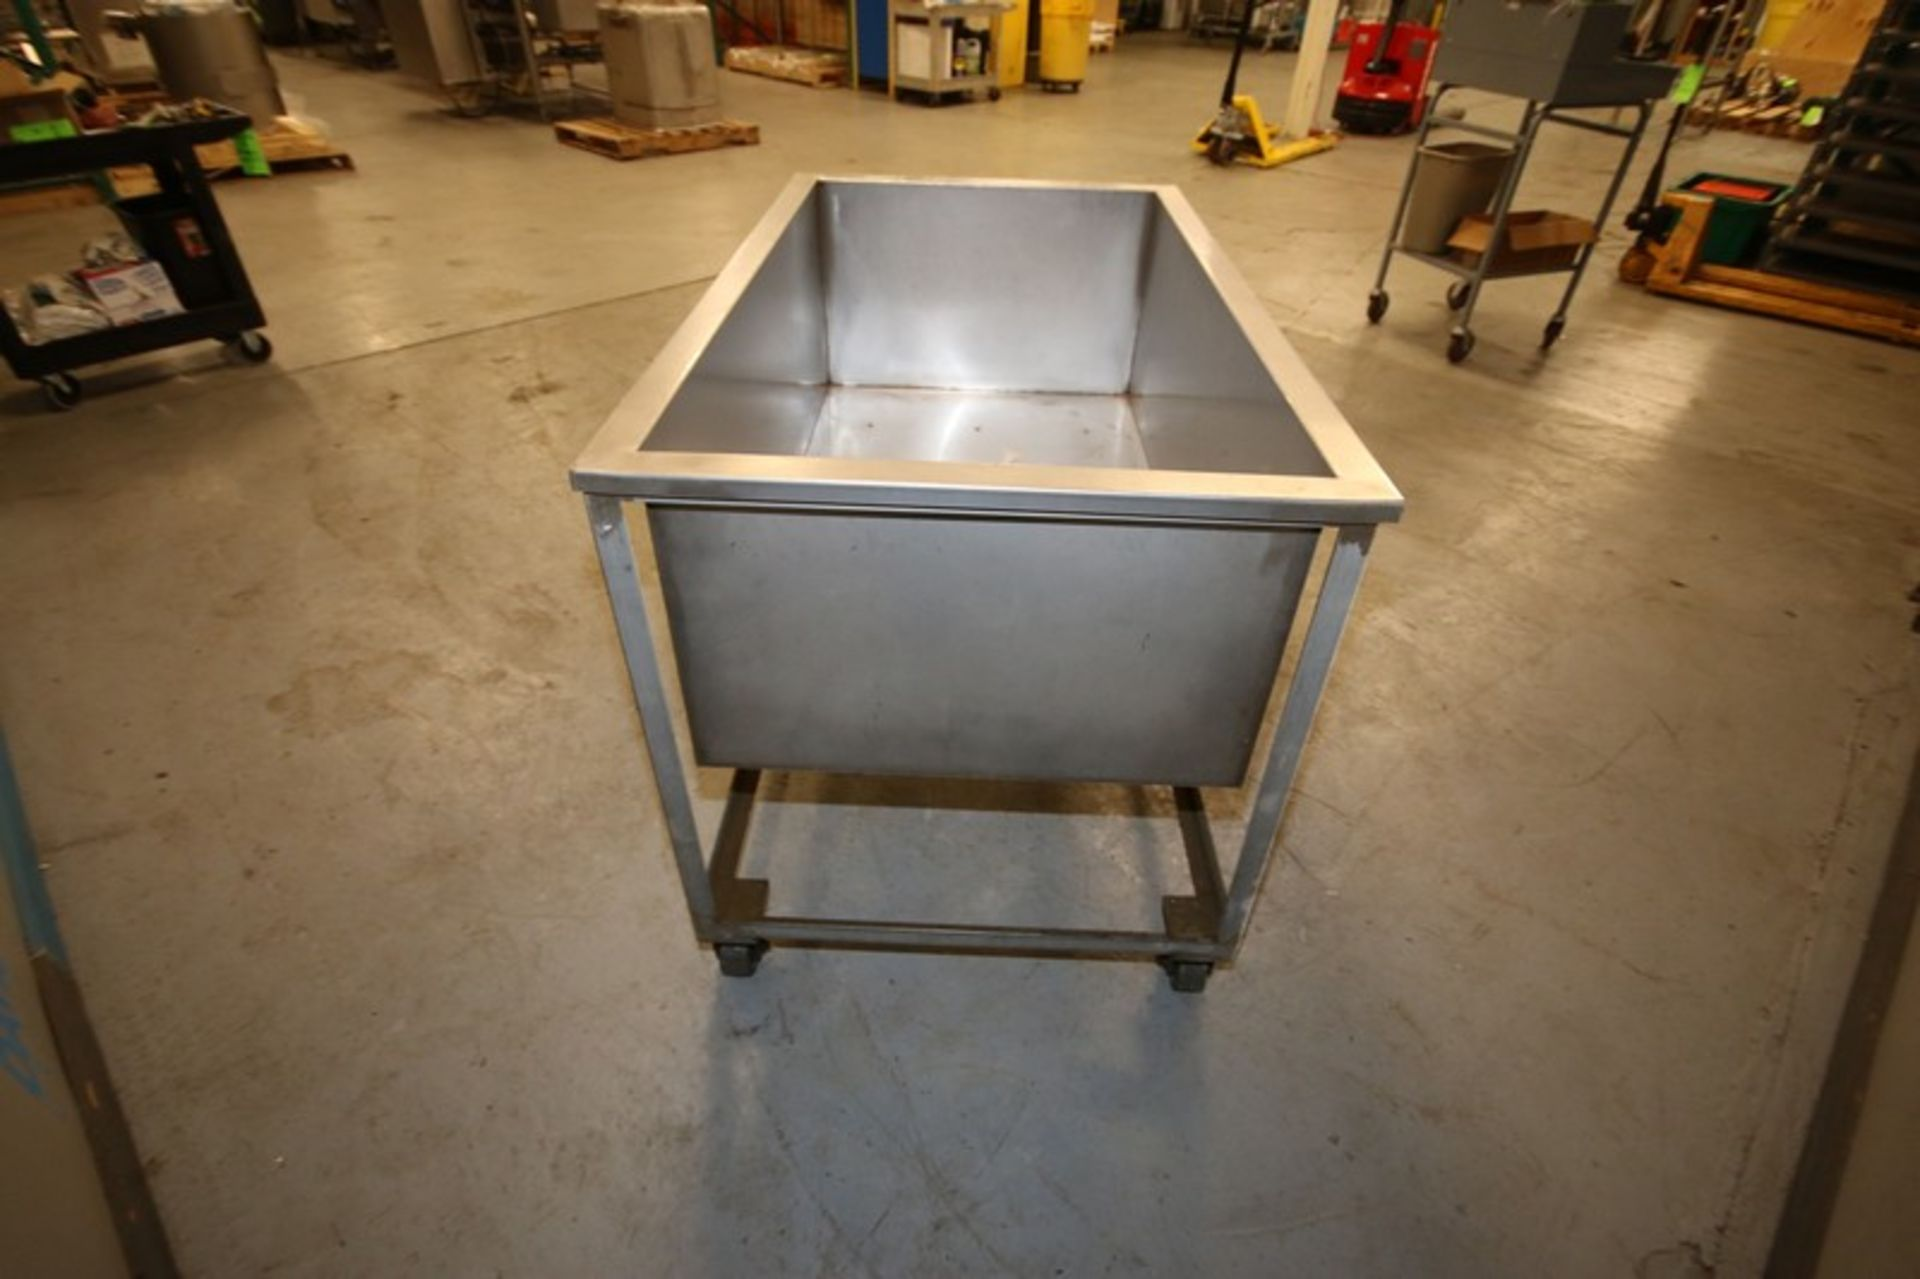 """Lot 7 - S/S Portable Tote, Internal Dims.: Aprox. 53-1/2"""" L x 29-1/2"""" W x 19"""" Deep, Mounted on Portable S/S"""